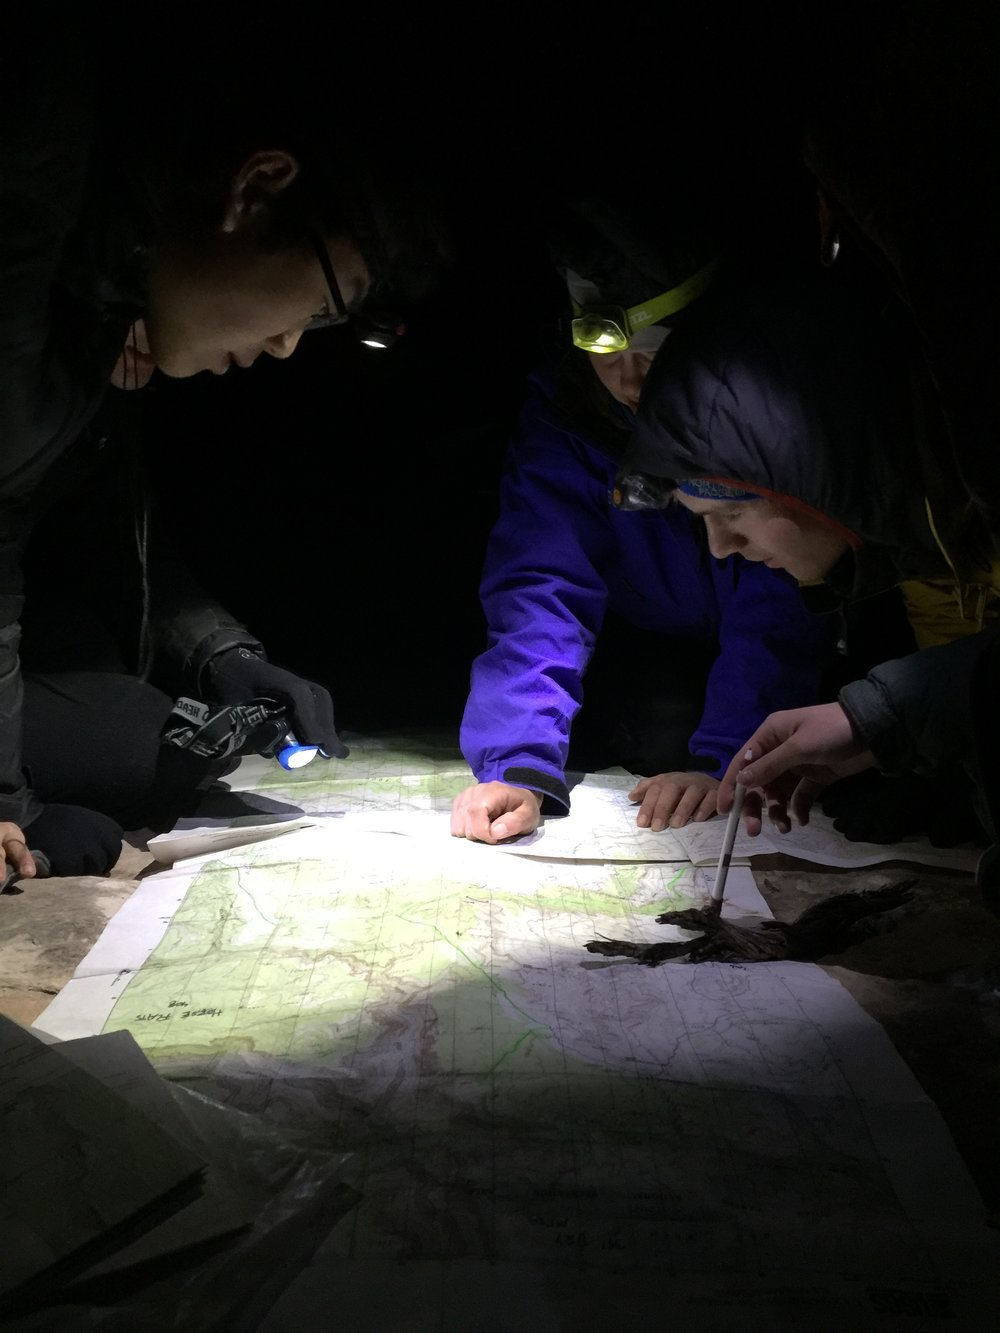 Topographic map reading is an important skill for wilderness trip leaders.